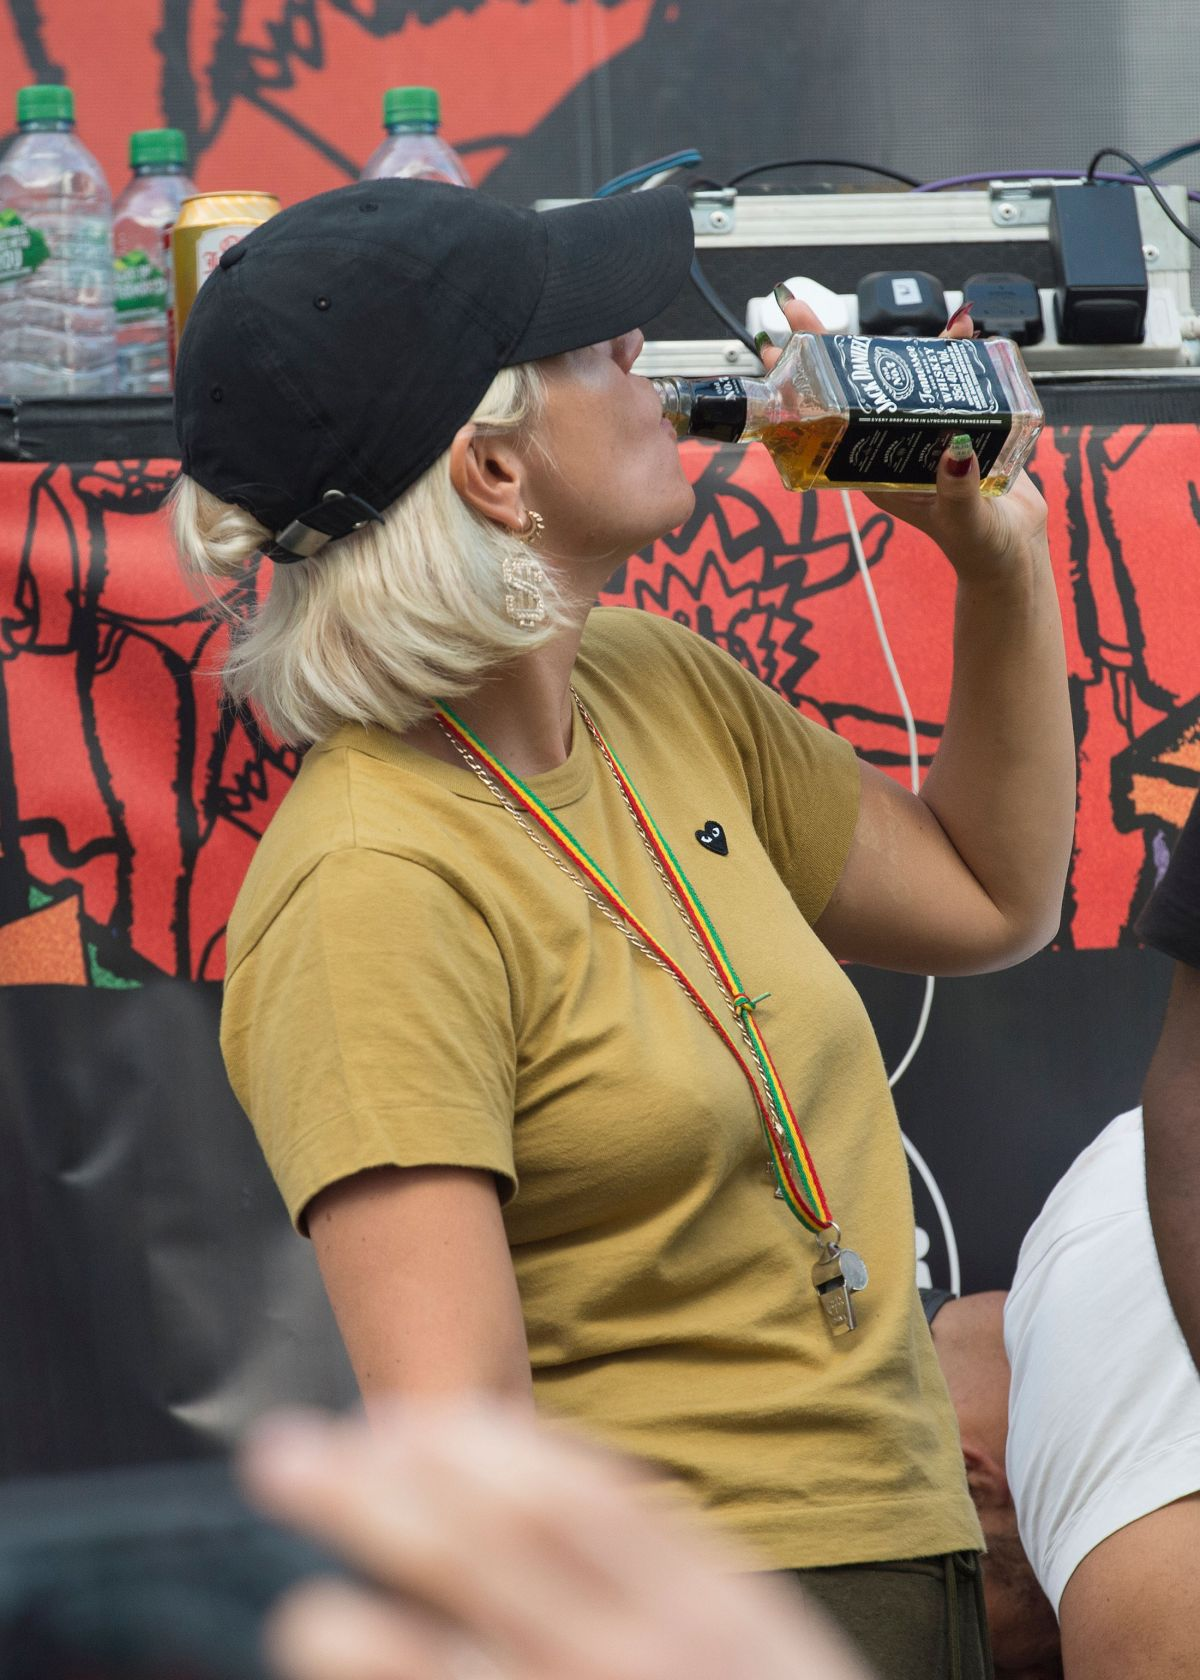 LILY ALLEN at Notting Hill Carnival in London 08/29/2016